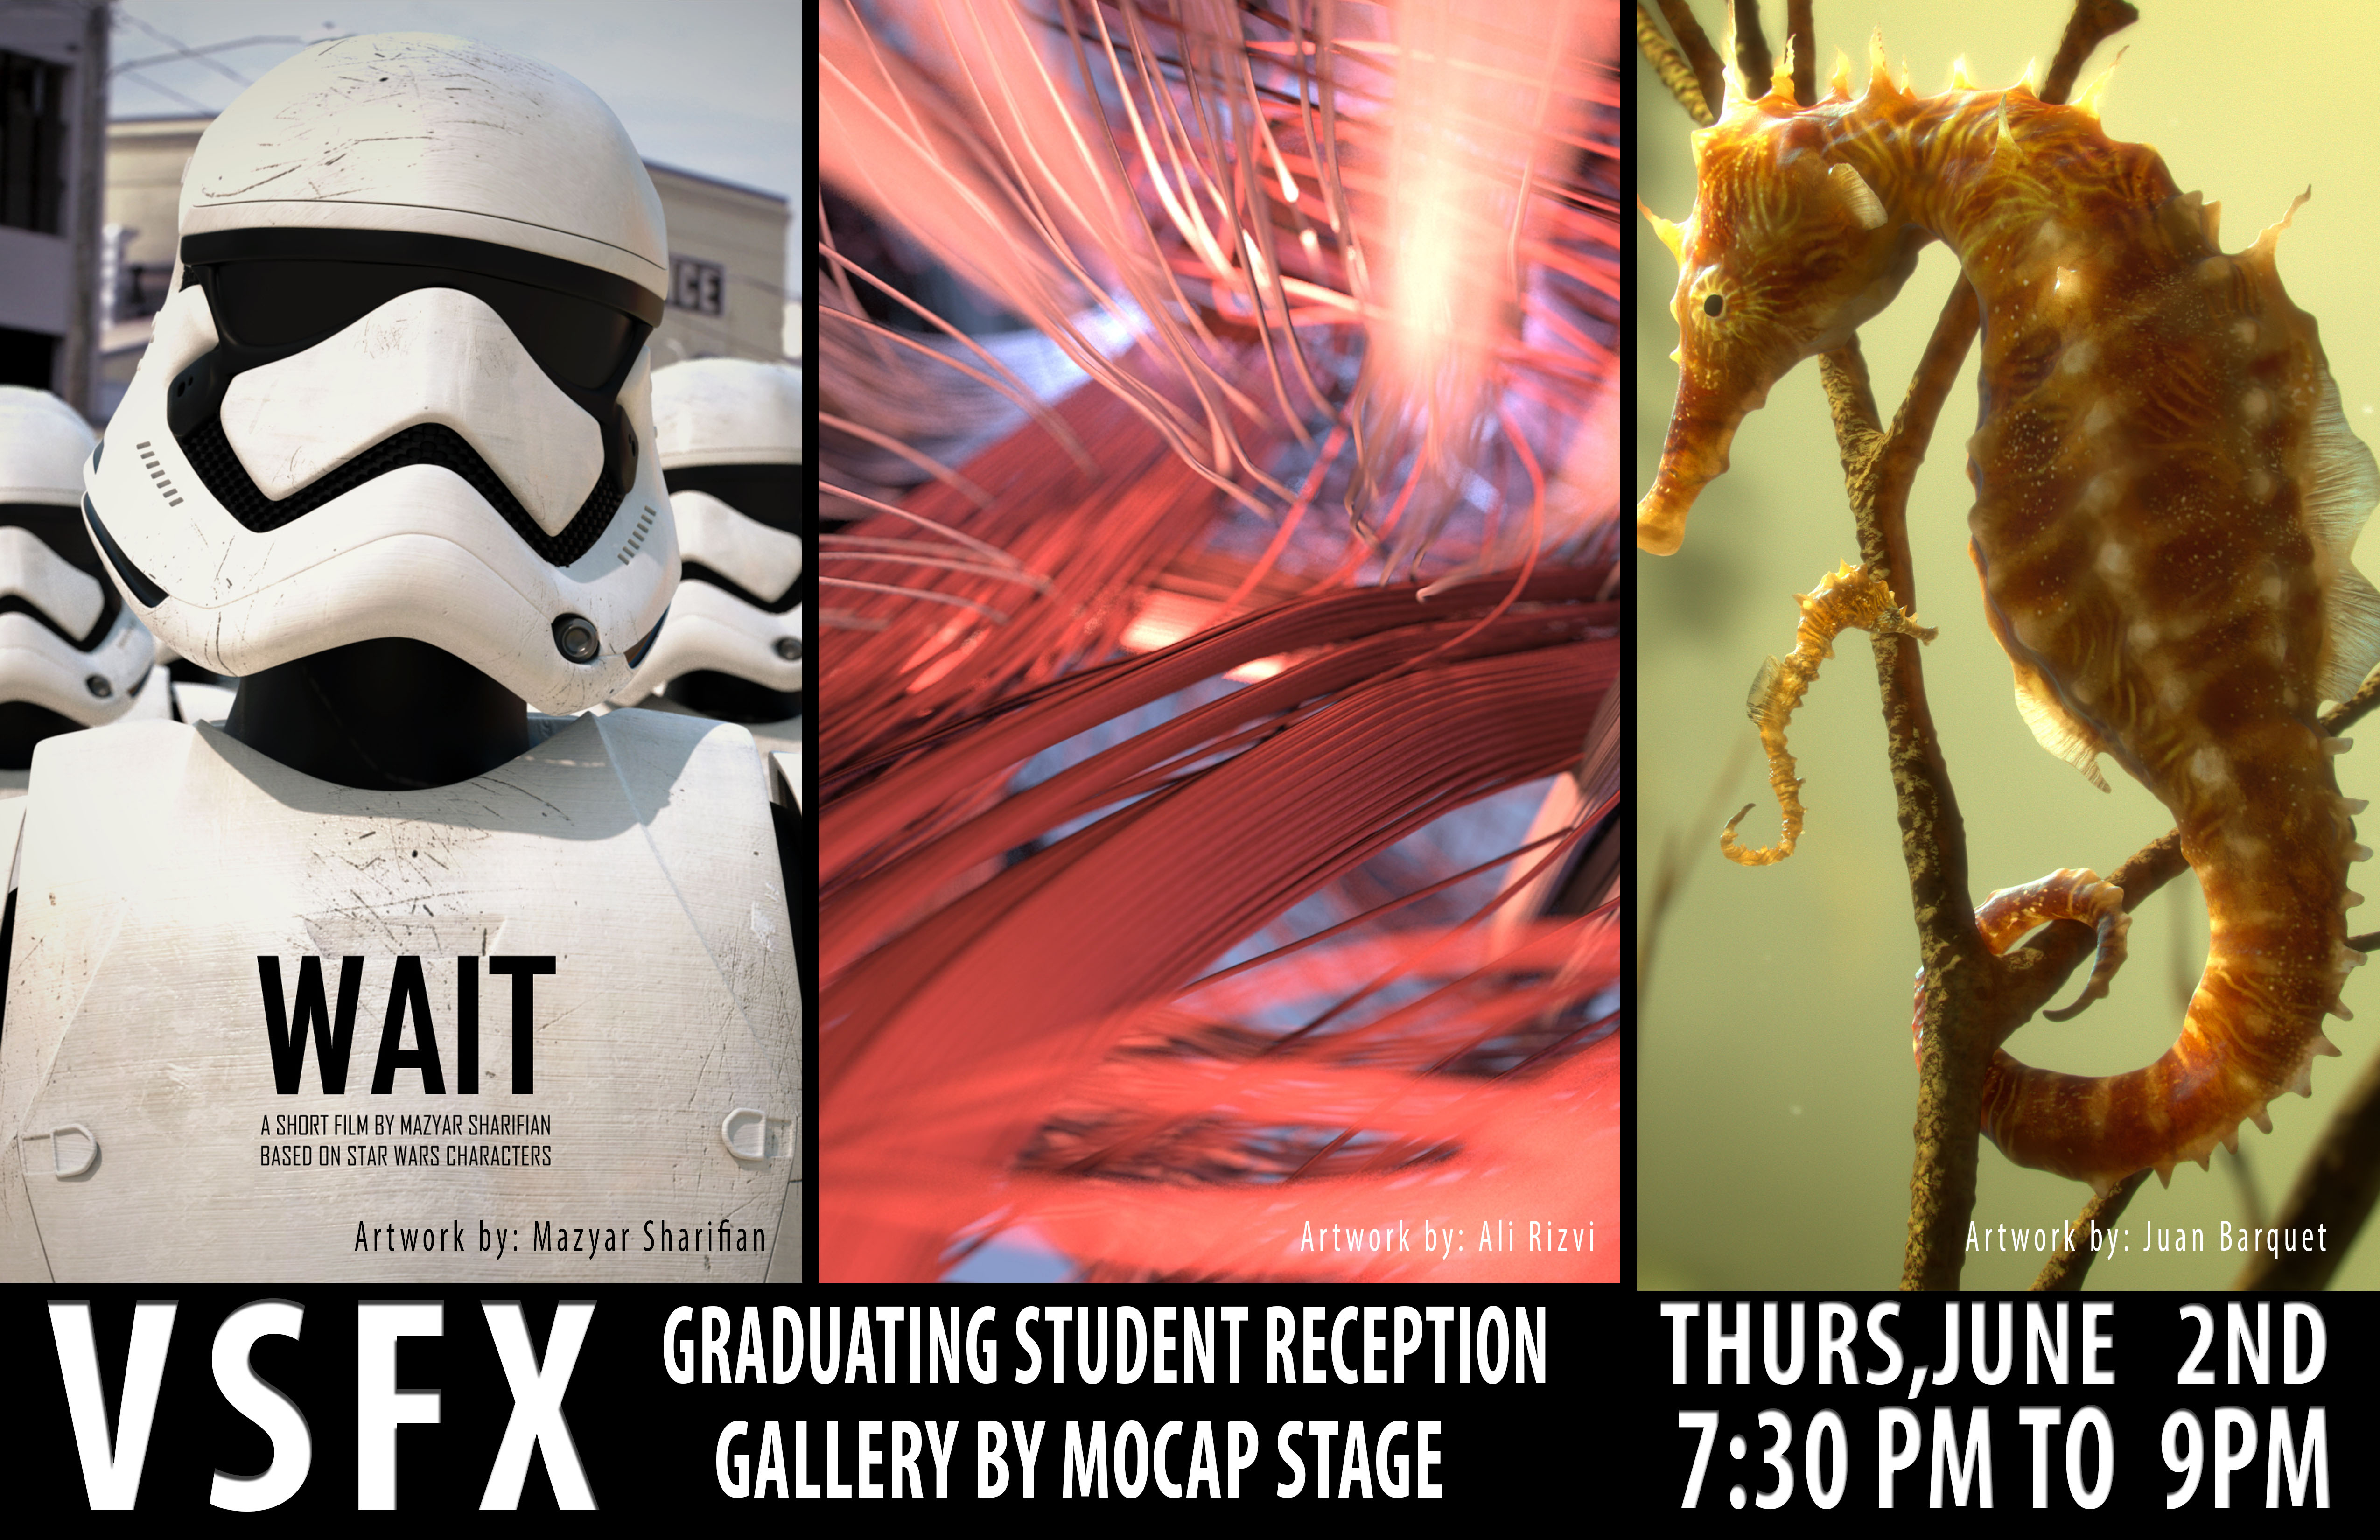 VSFX Graduating Student Reception Gallery By Mocap Stage